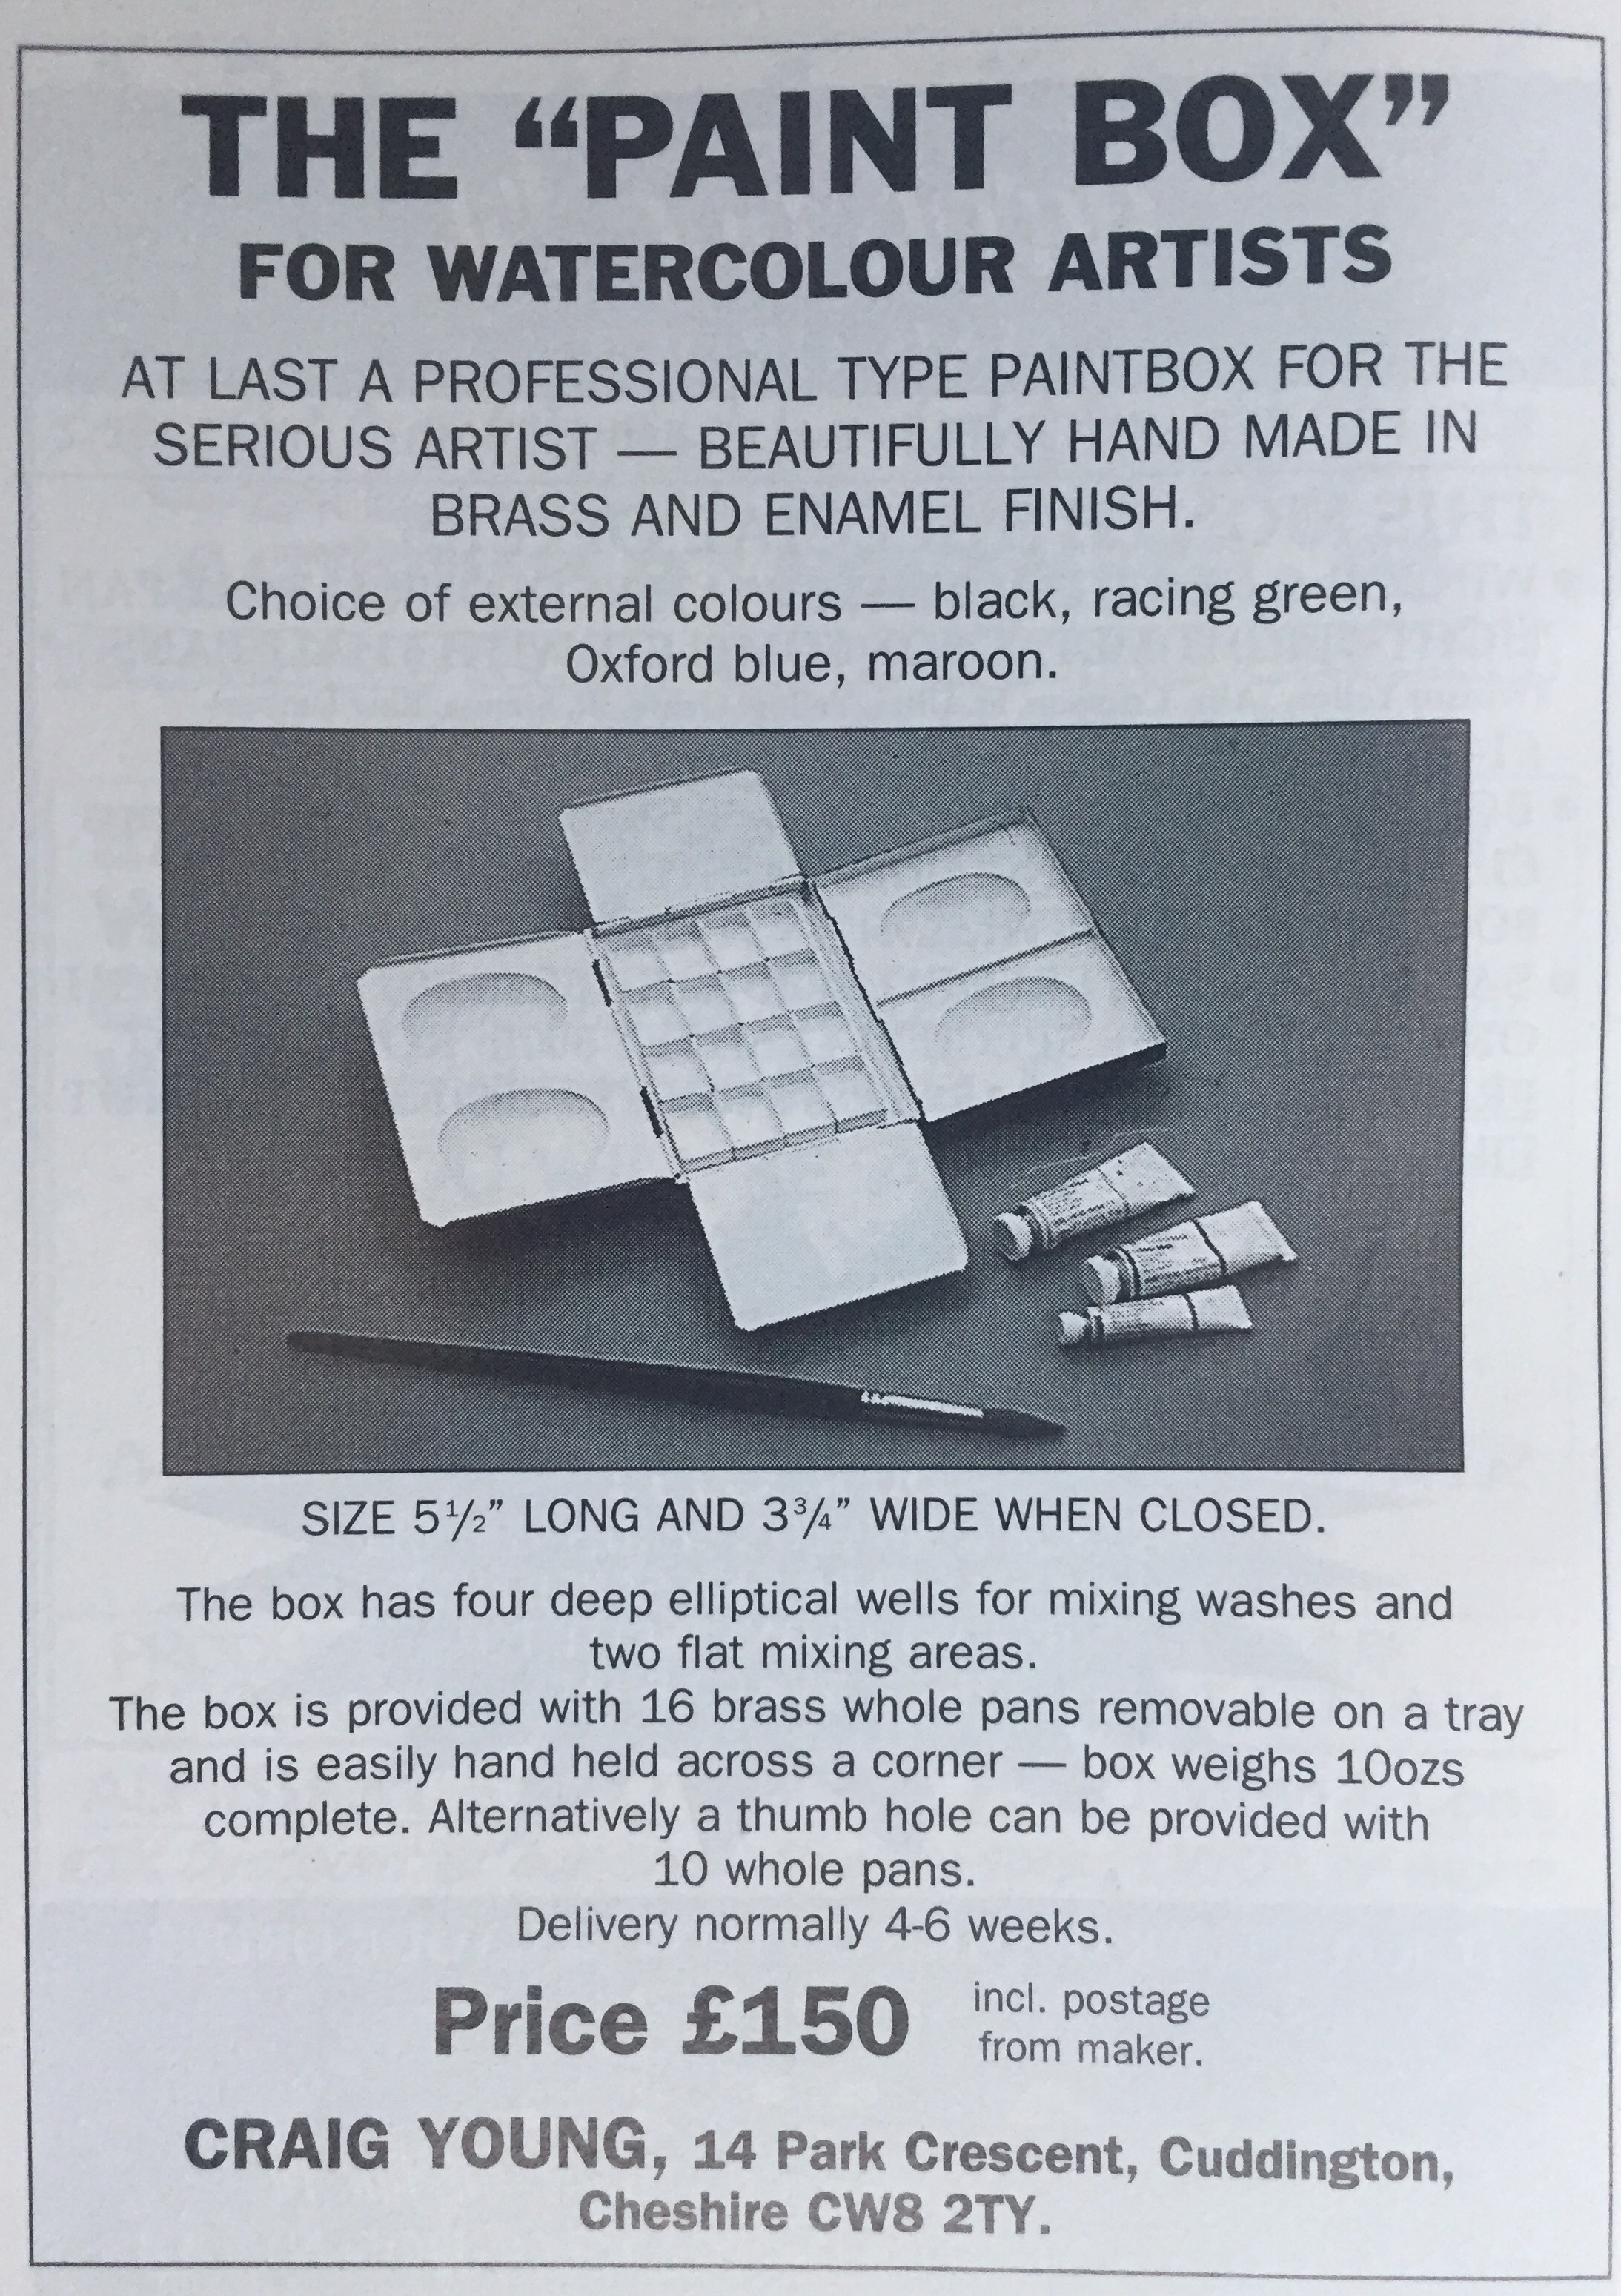 Original 1996 advert for the Craig Young Paint Box